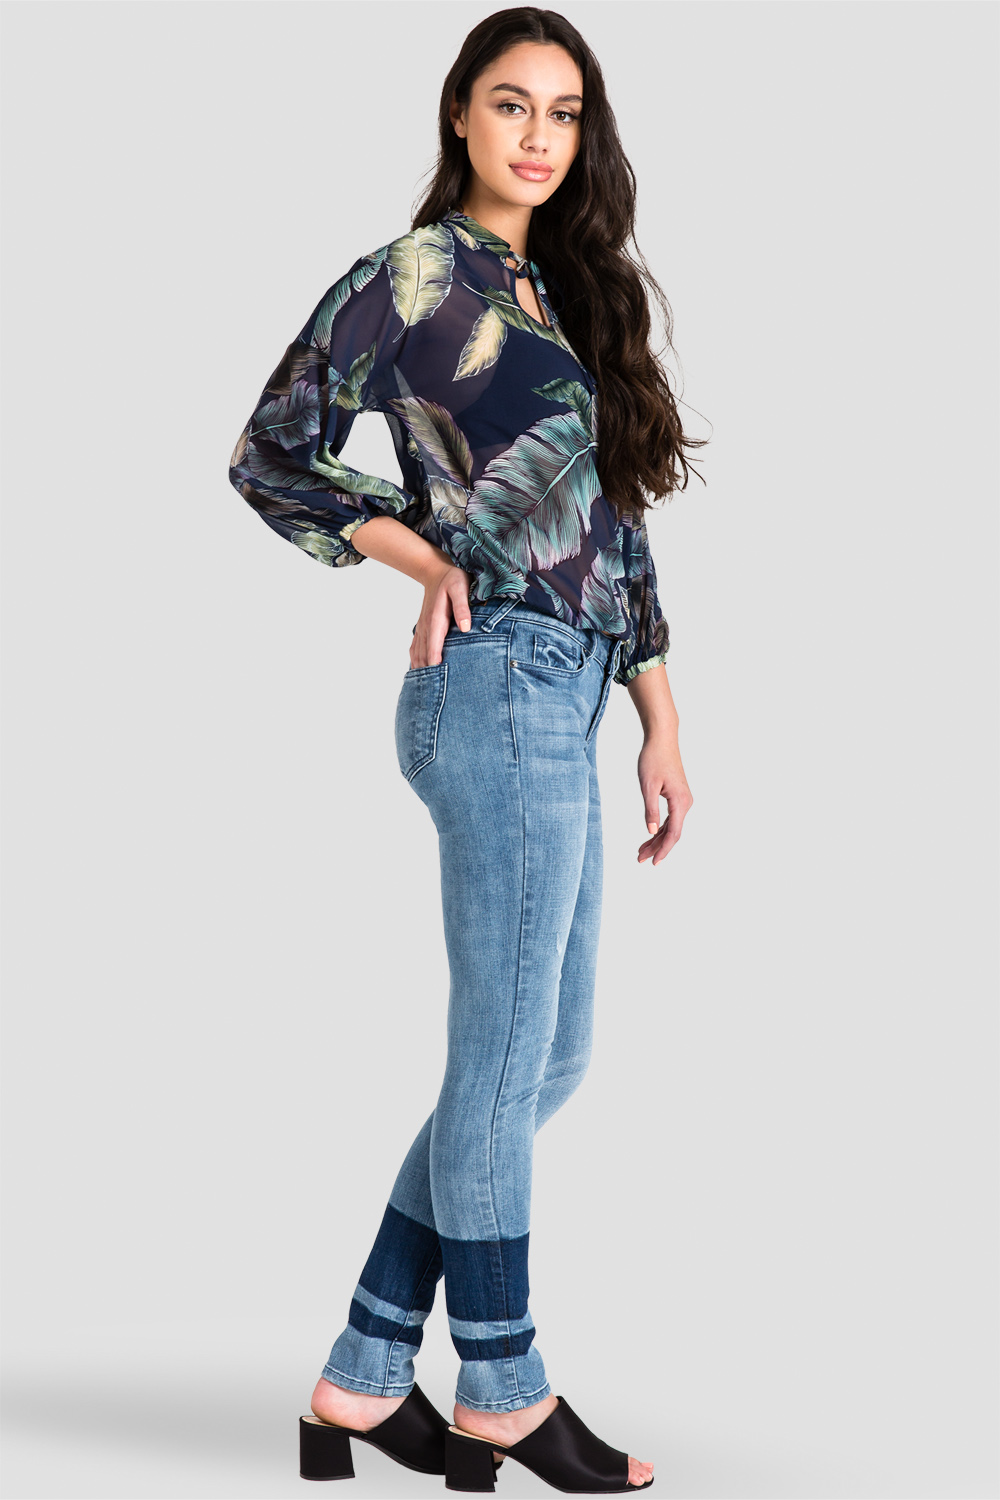 Women's Trendy Tropical Leaf Print Blouse